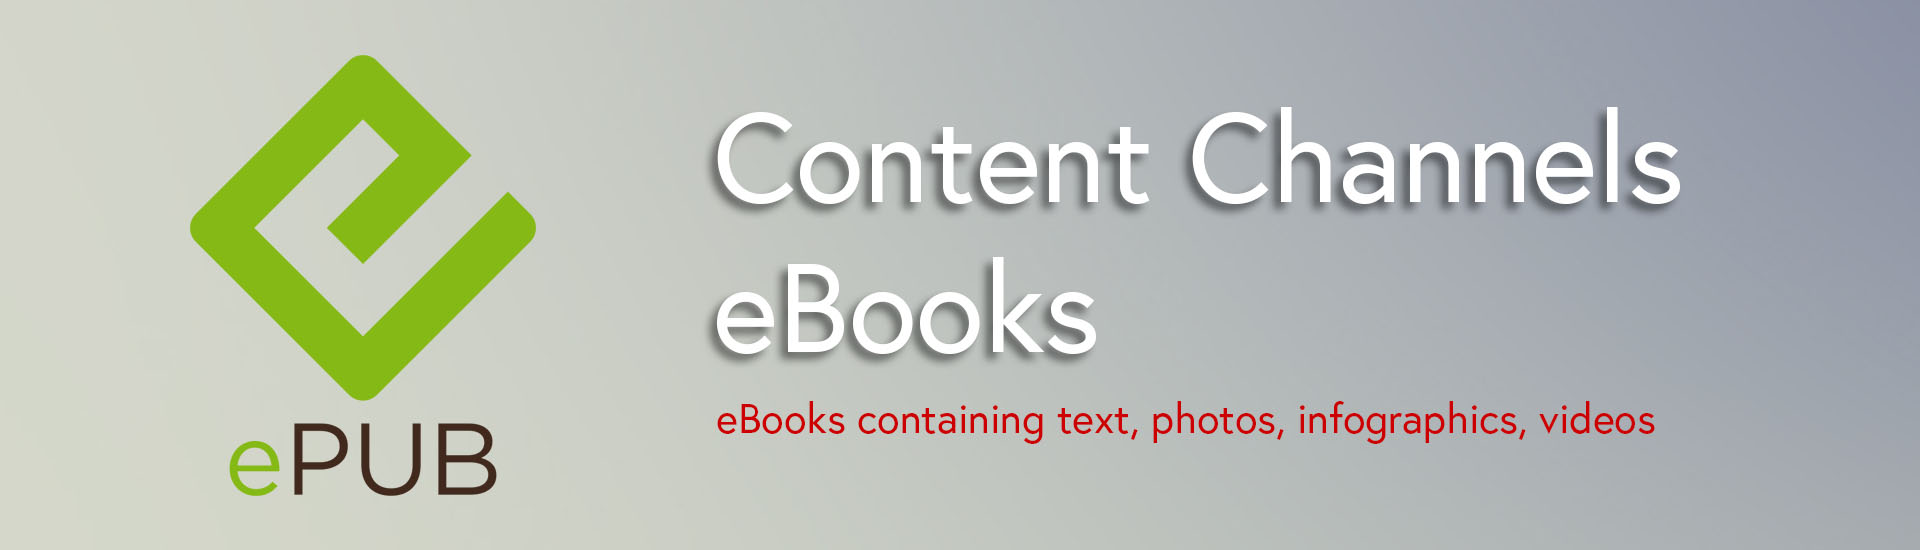 Content Channels - eBooks